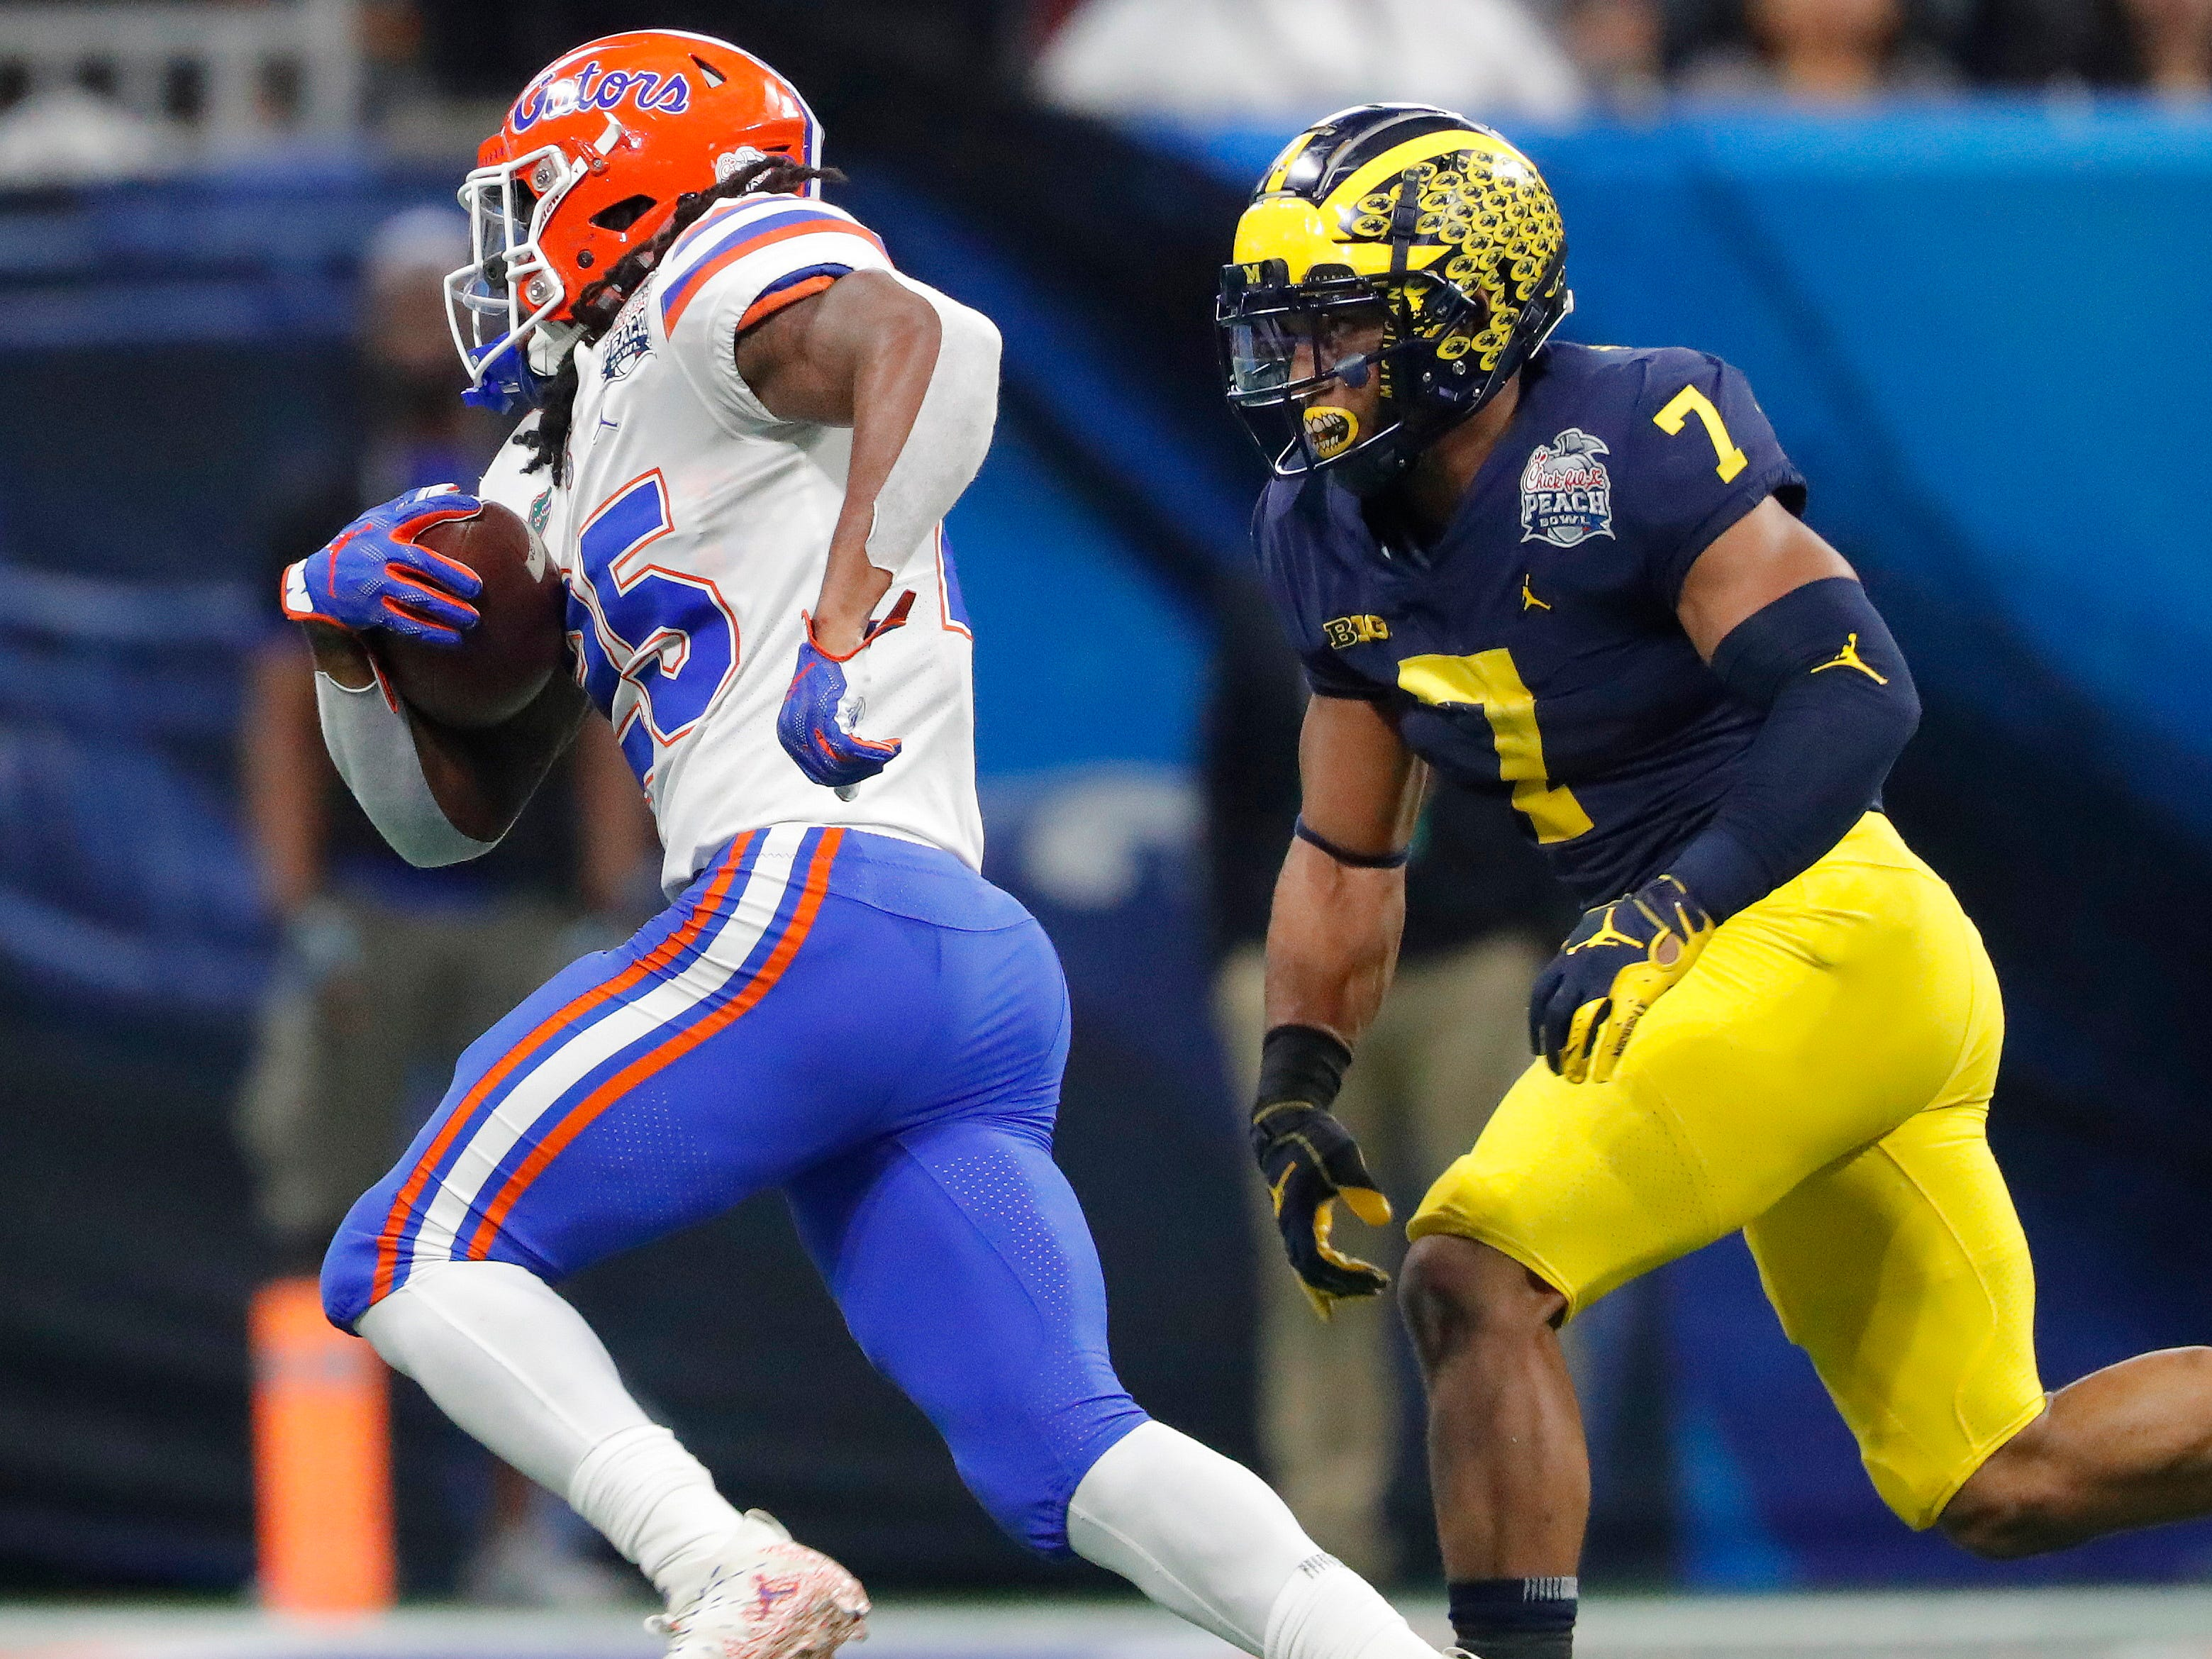 Florida running back Jordan Scarlett runs against Michigan linebacker Khaleke Hudson during the first half of the Peach Bowl on Saturday, Dec. 29, 2018, in Atlanta.